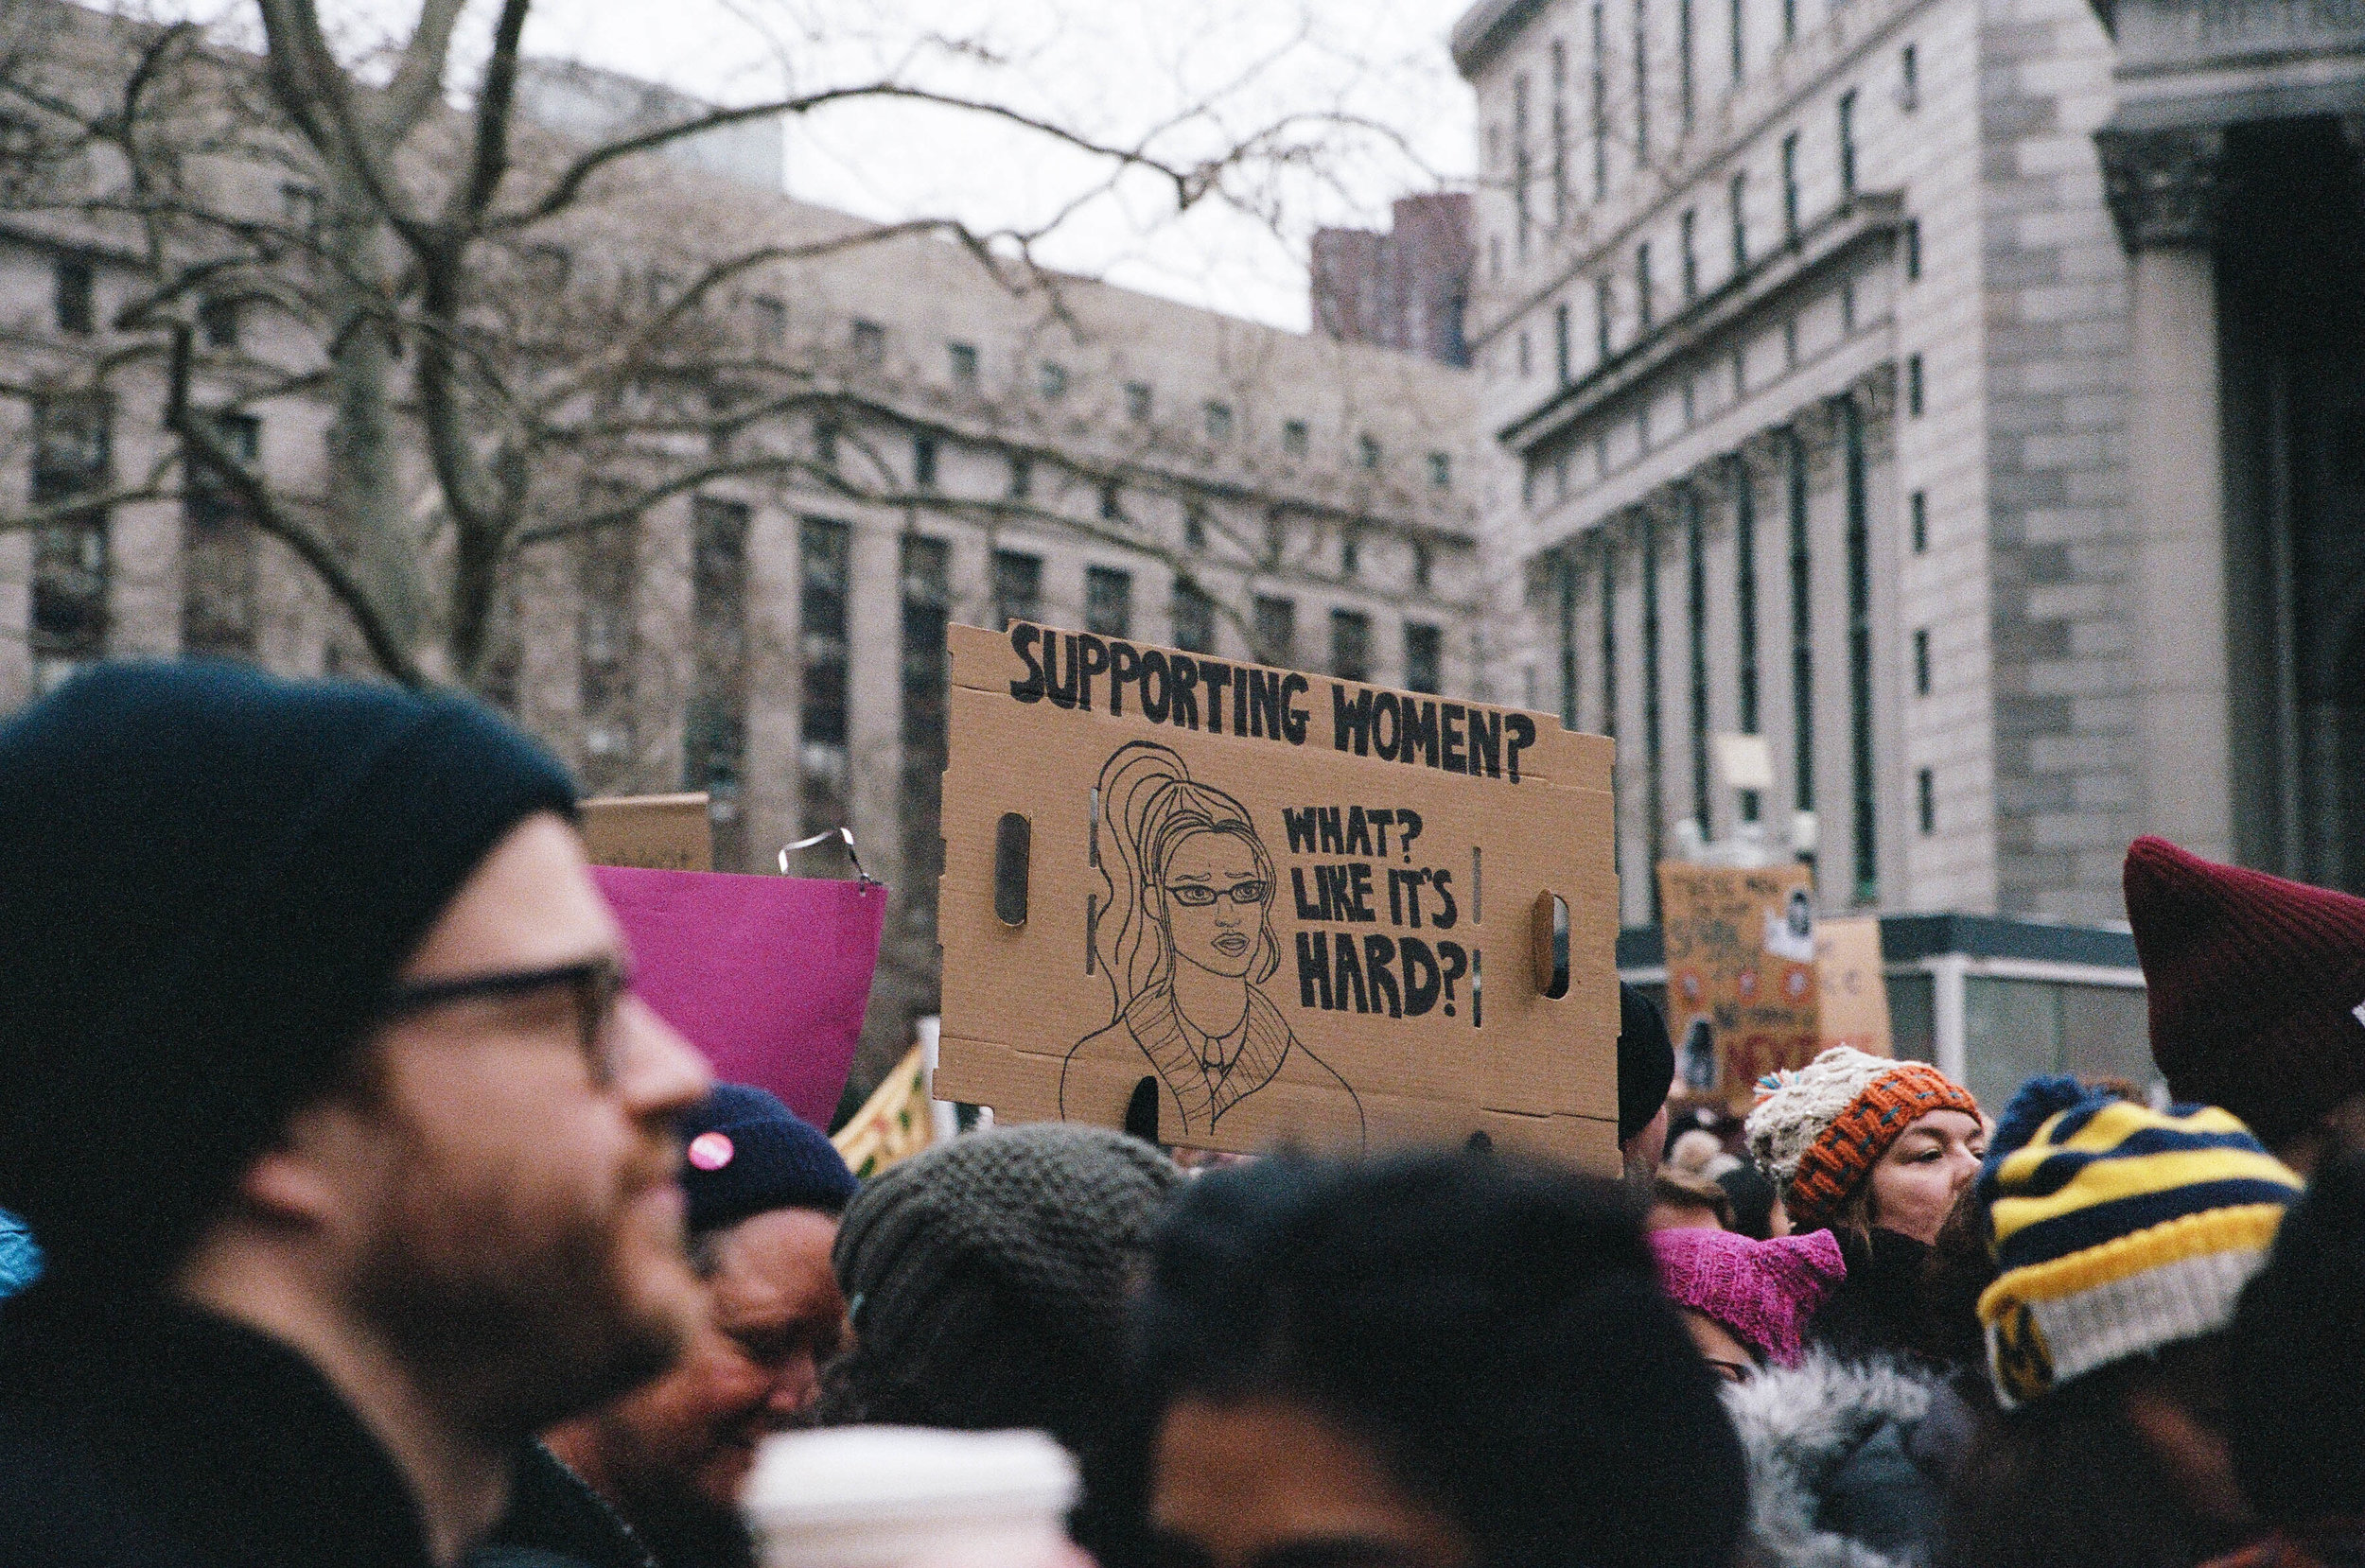 2019 NYC Women's March - For Pure Nowhere